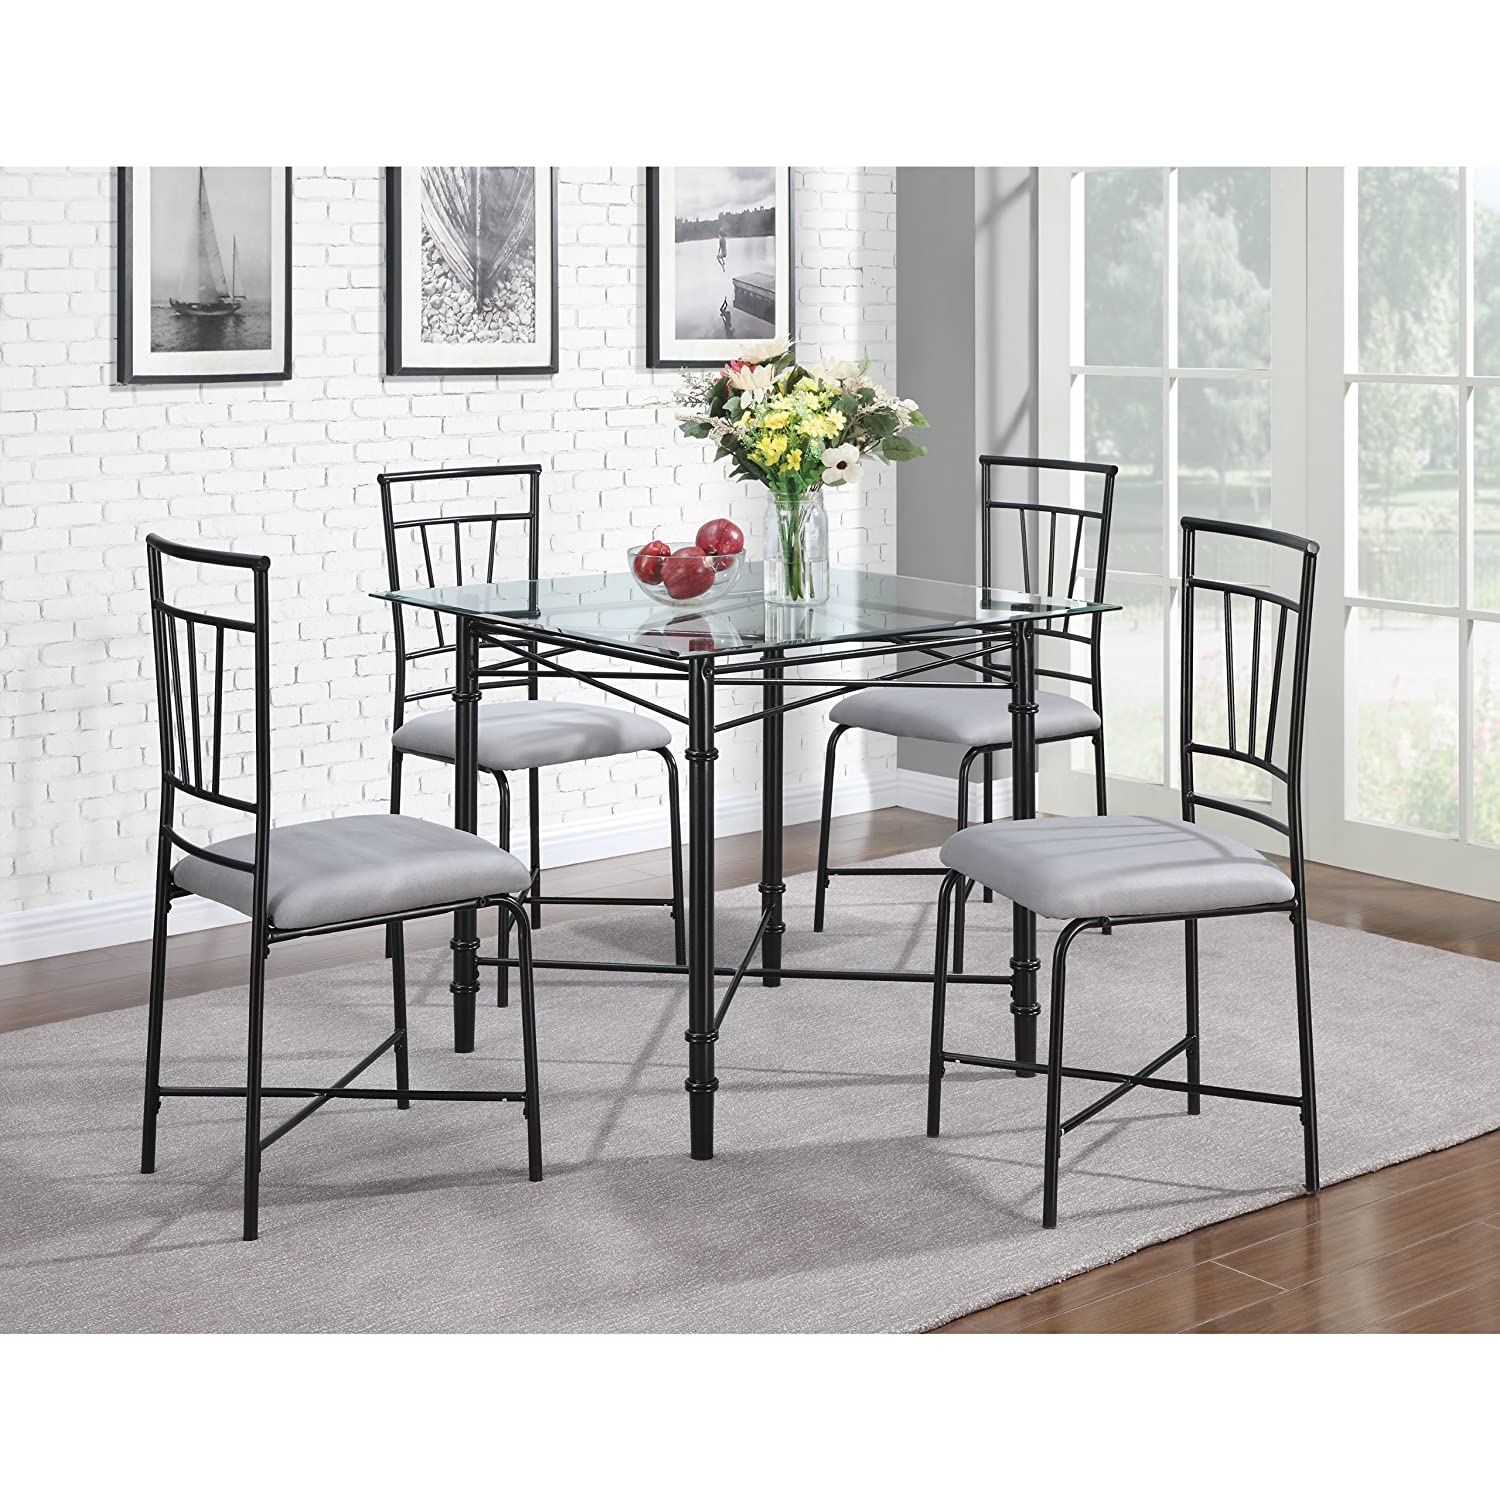 Amazon Dorel Living 5 Piece Glass Top Metal Dining Set Kitchen